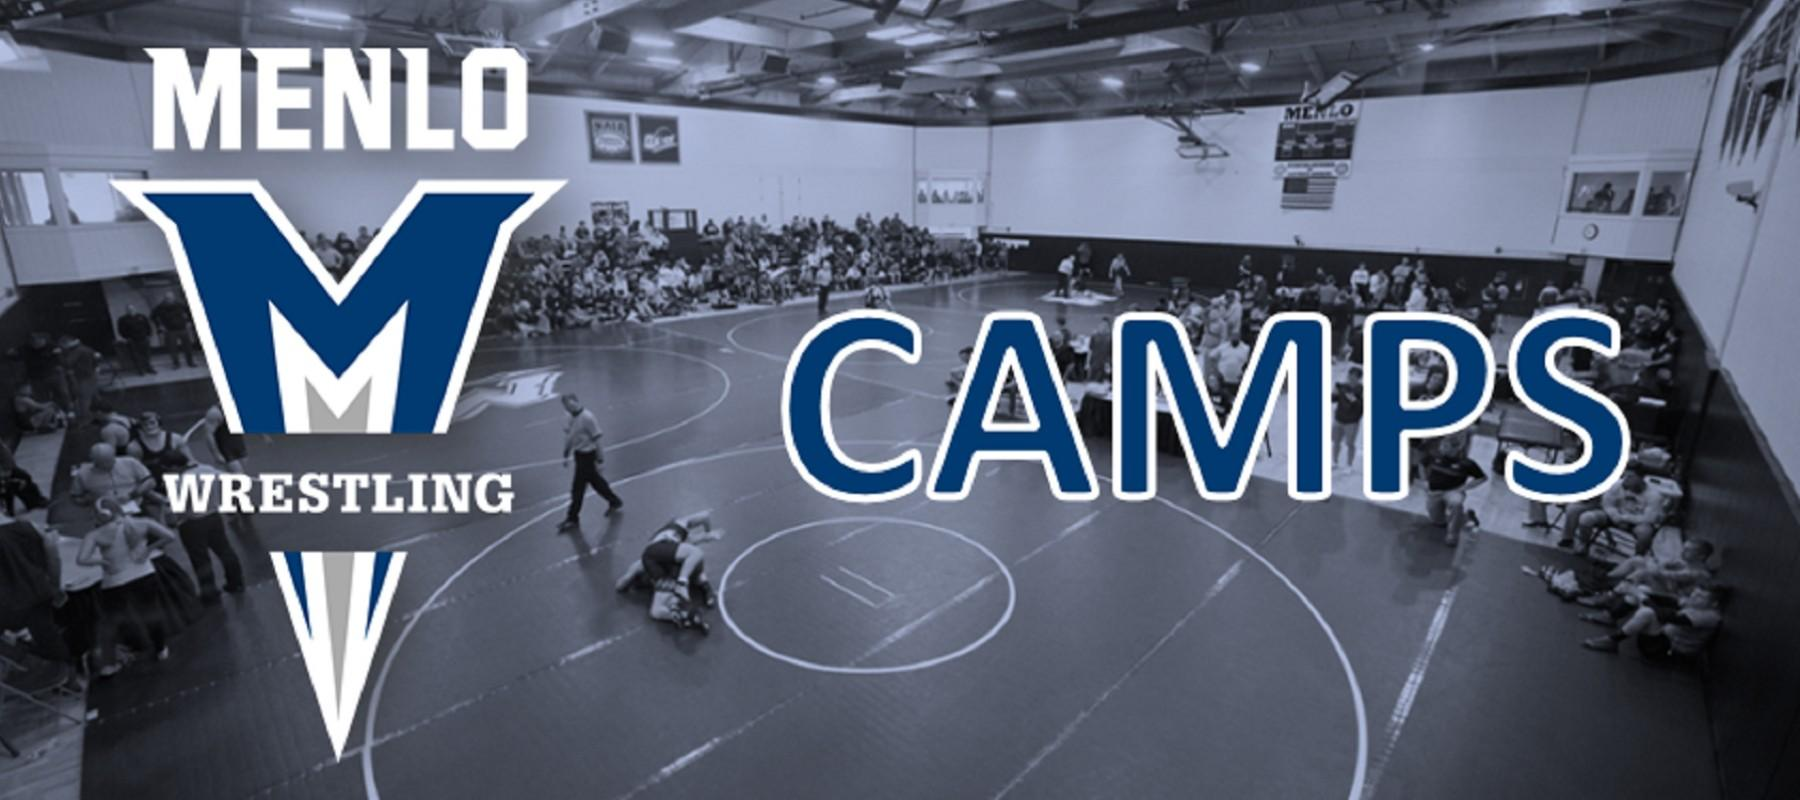 Men's and Women's Wrestling Camps Announced